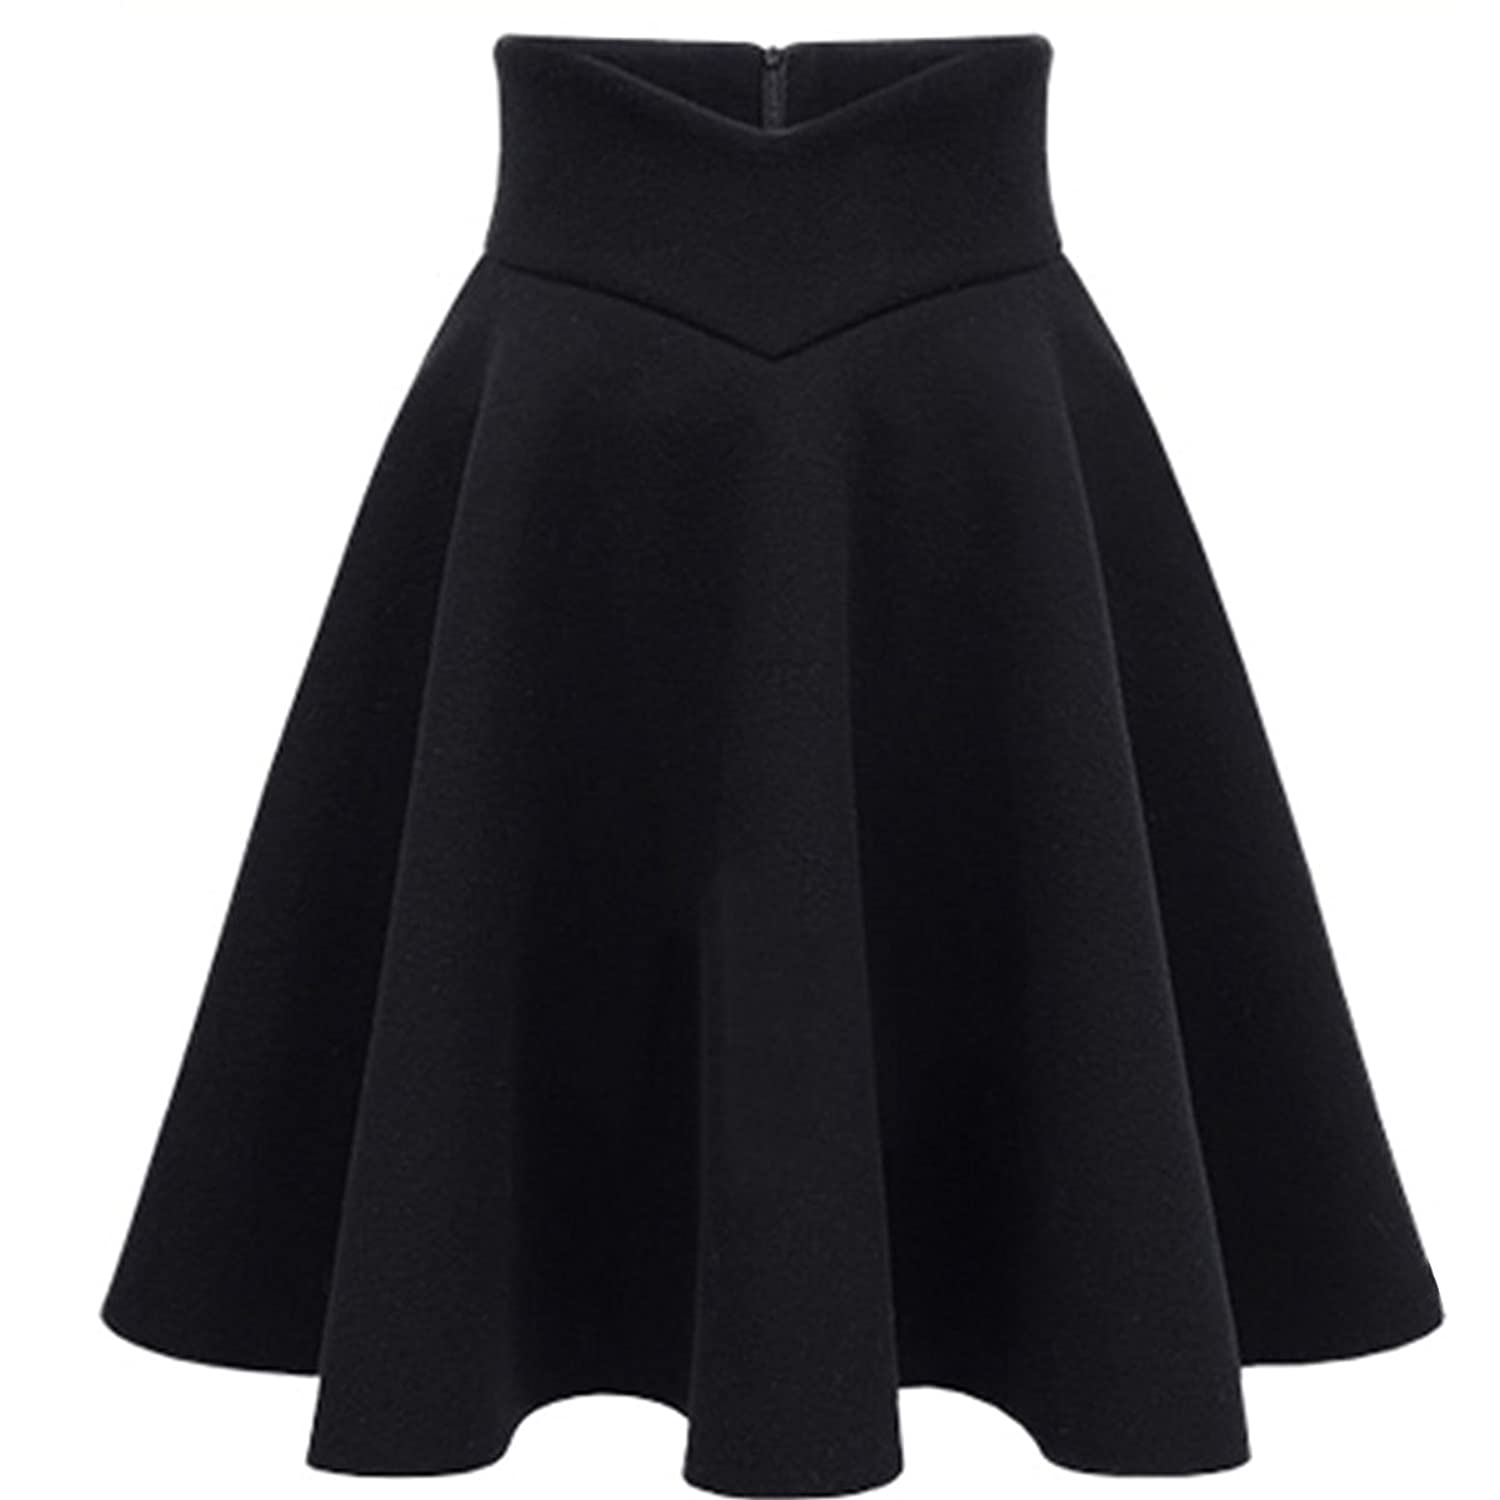 Cityelf Women's Winter Chunky High Waist Wool Stretch Slim Pleated Skirt